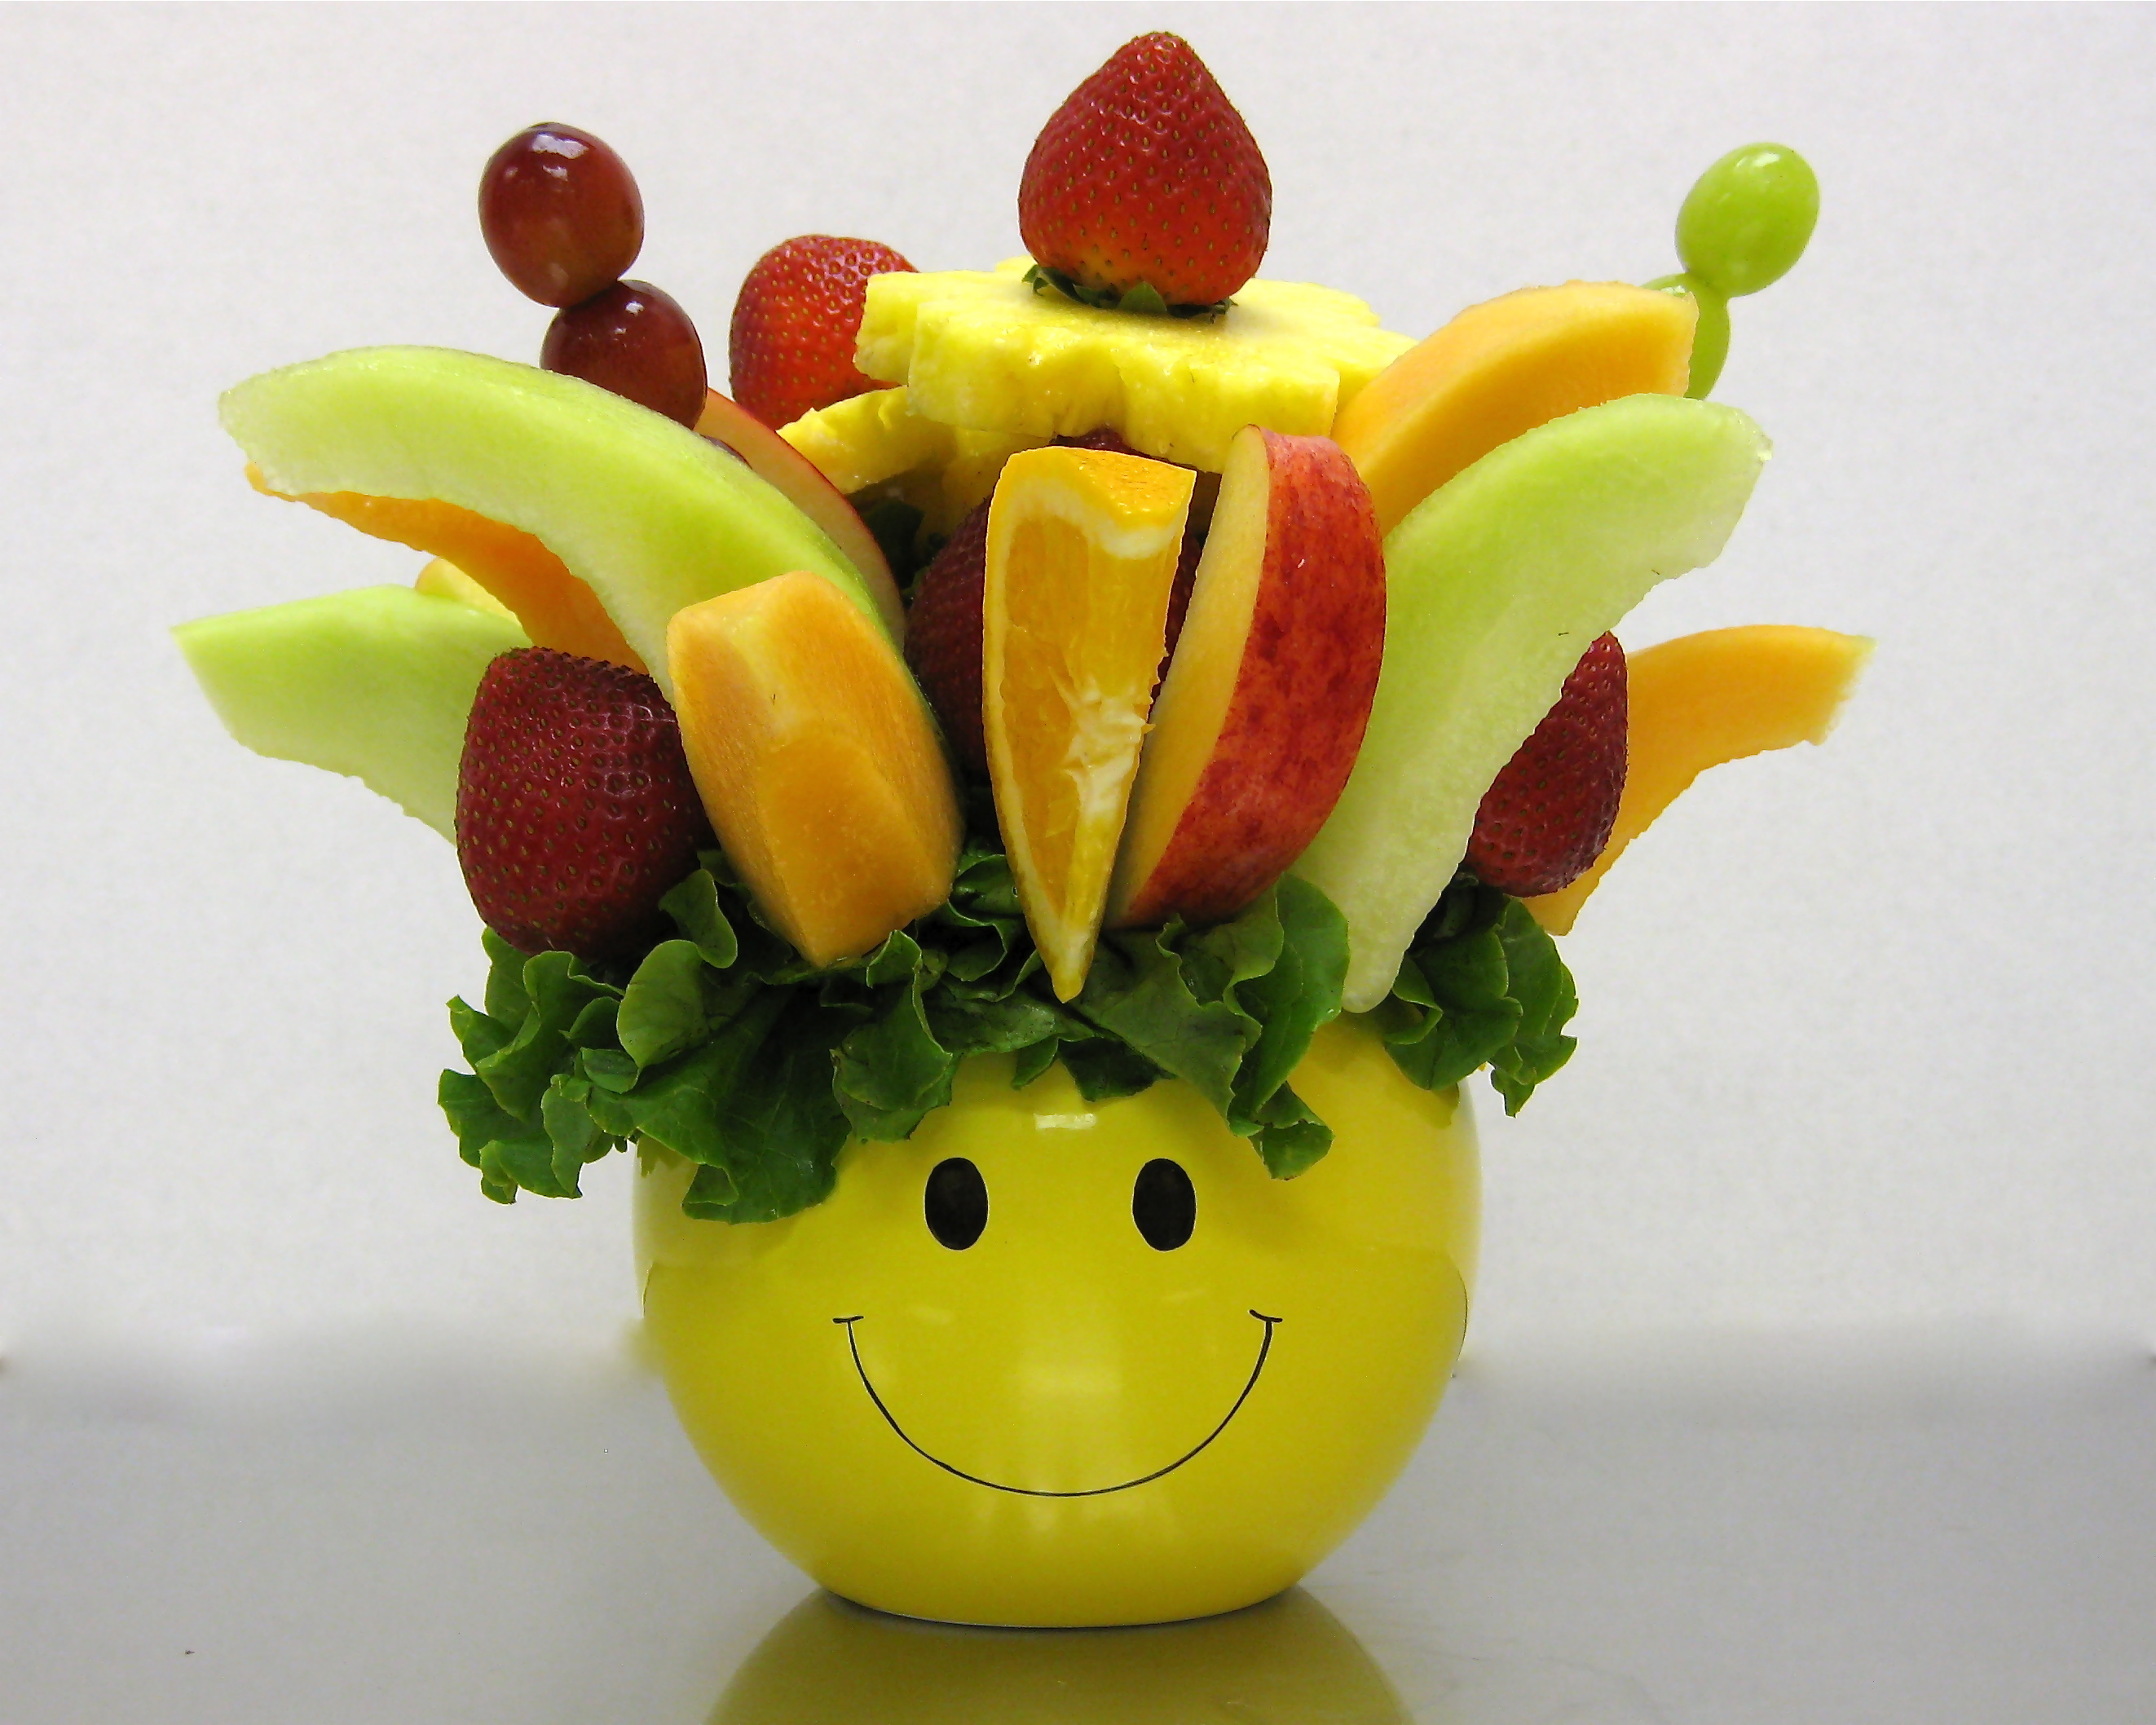 how to make your own edible fruit arrangement